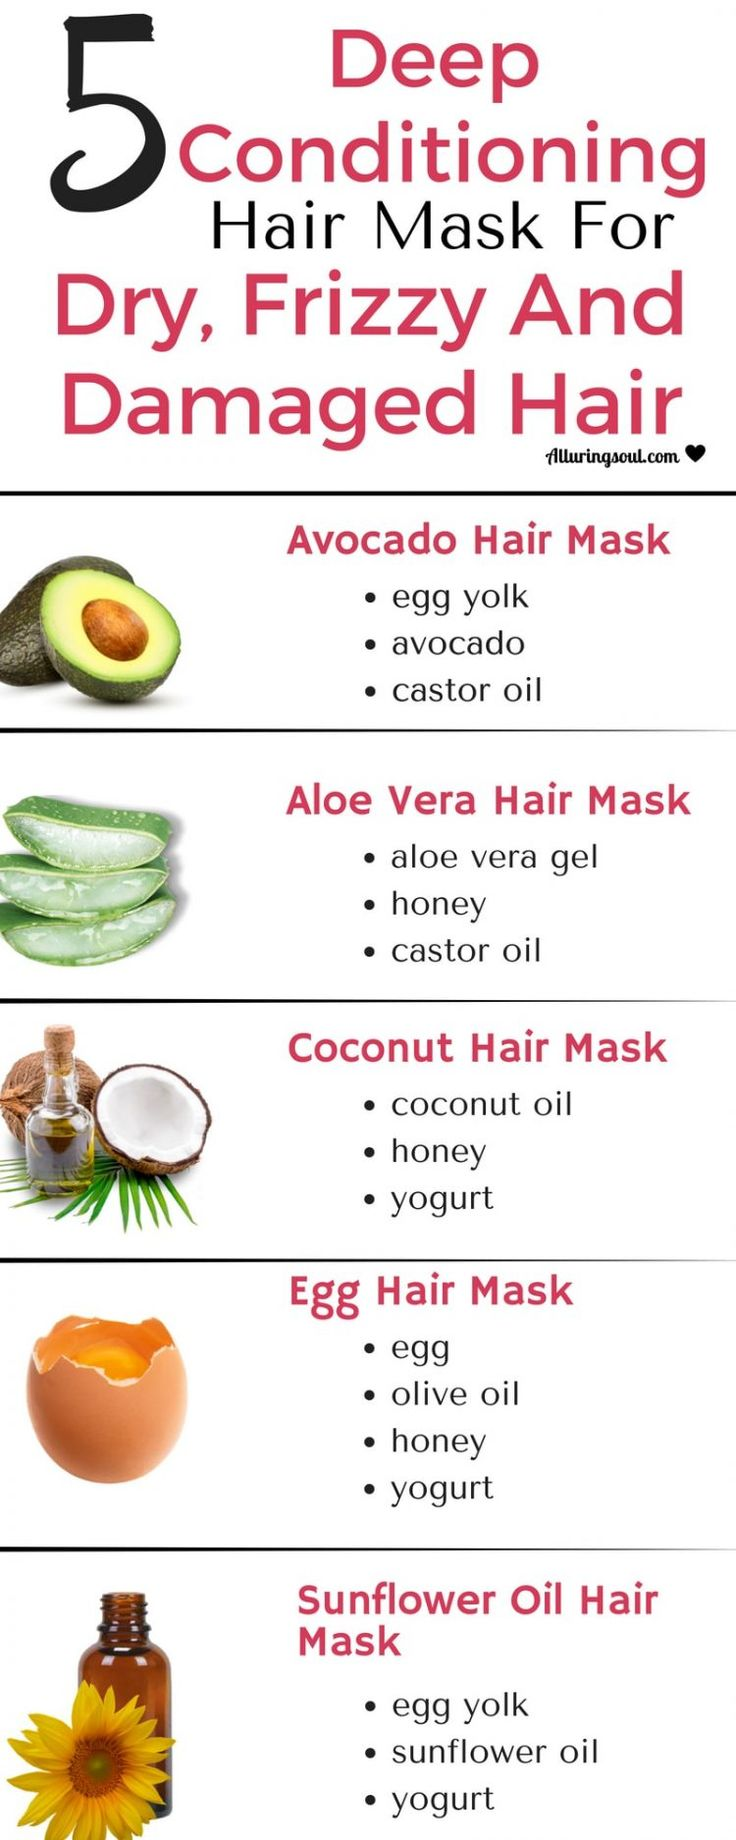 5 Deep-care hair mask for dry, frizzy and damaged hair – Hair